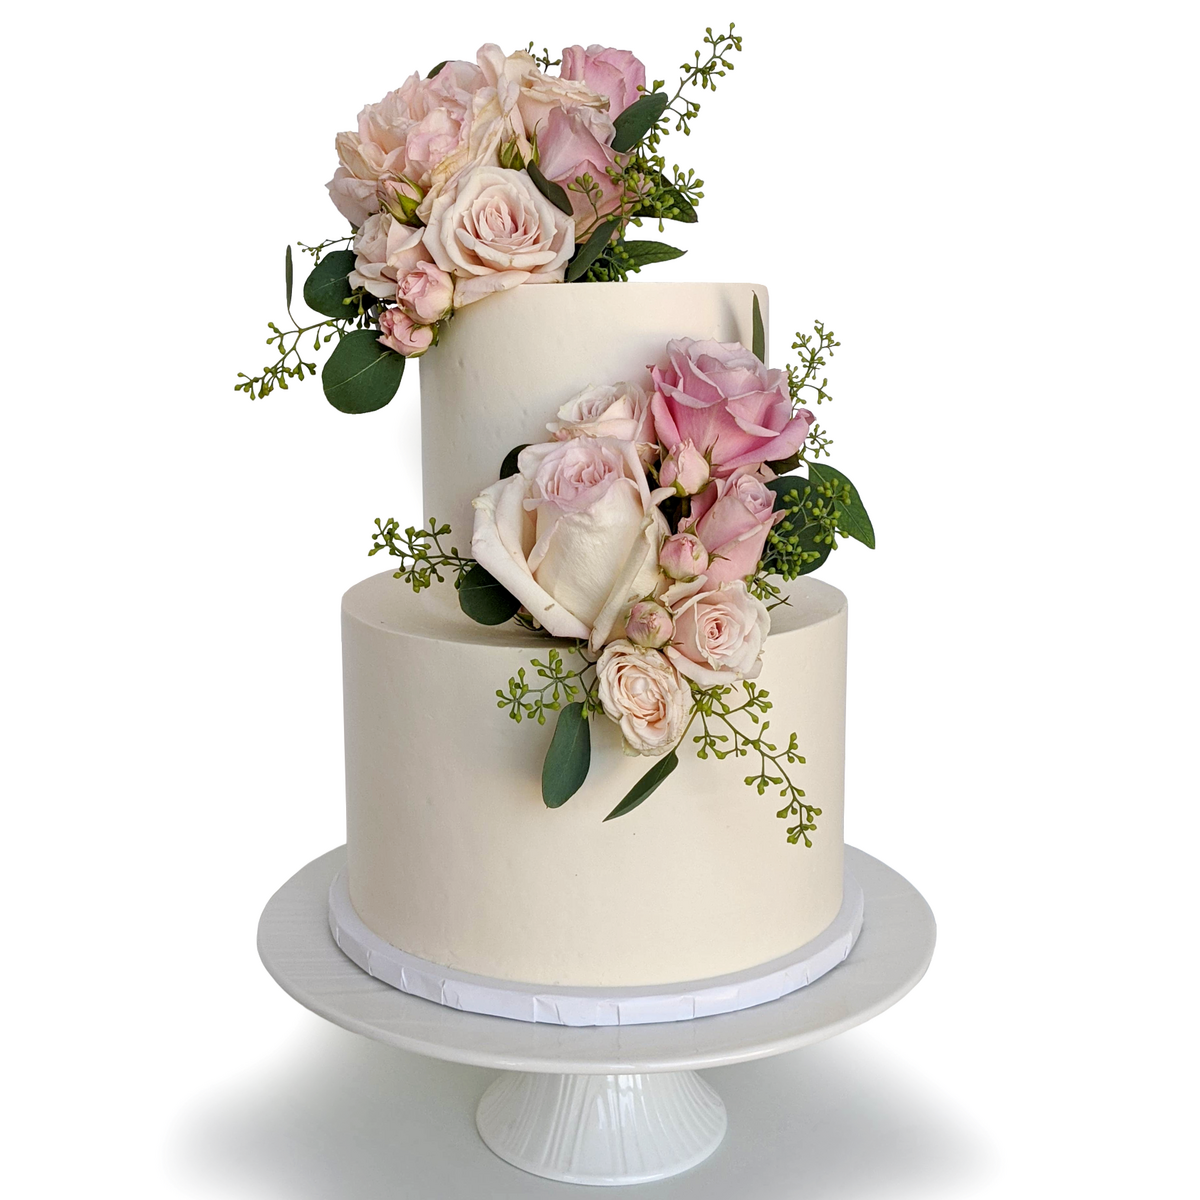 Whippt Kitchen - wedding cakeJuly 25, 2020 2b